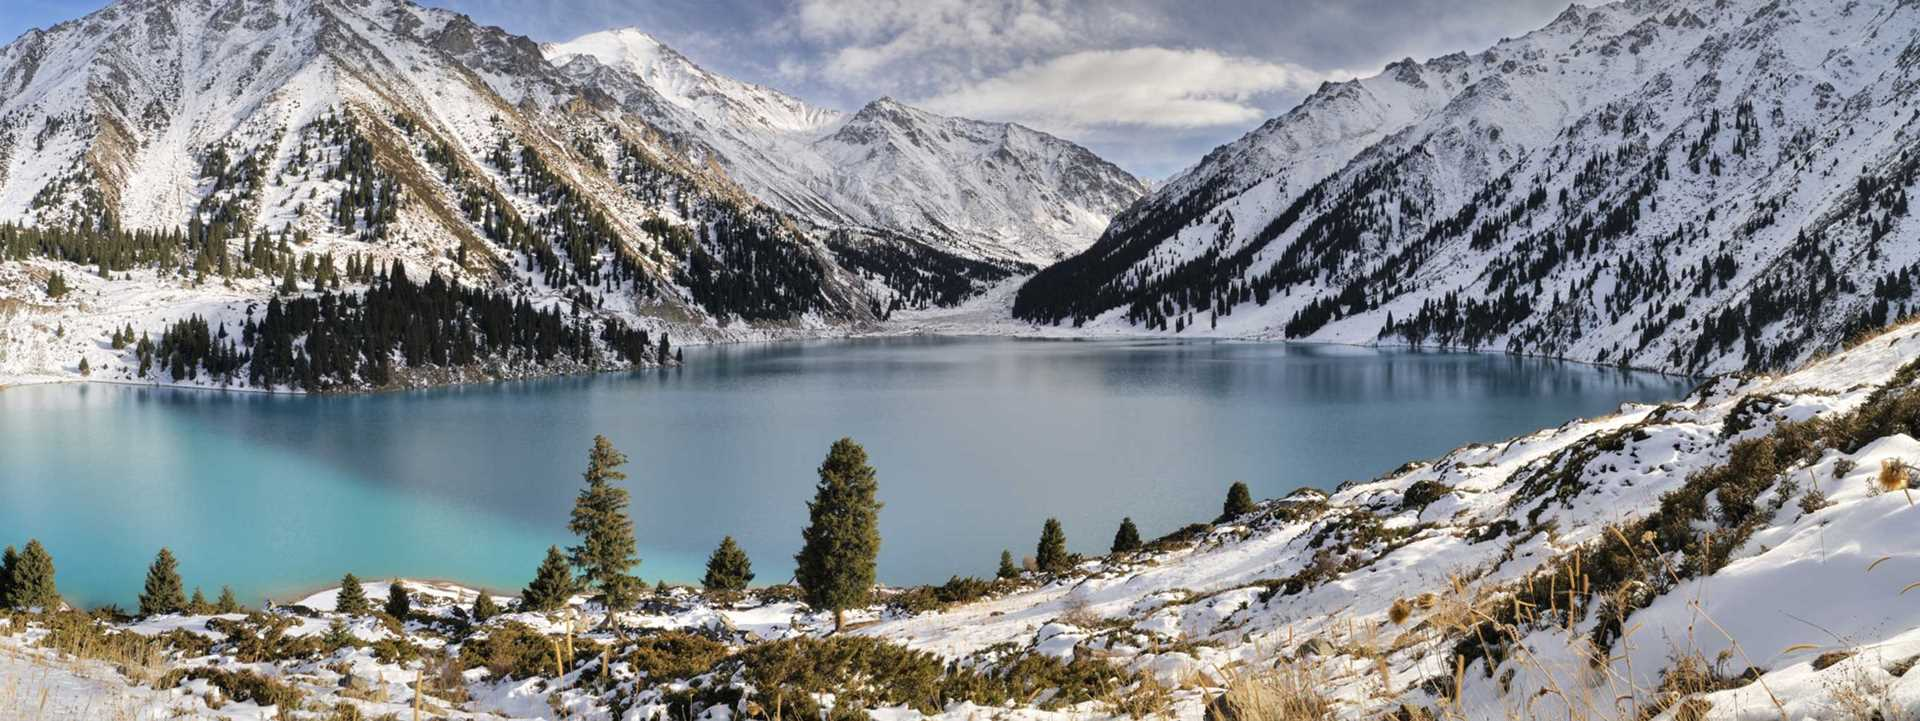 almaty-lake